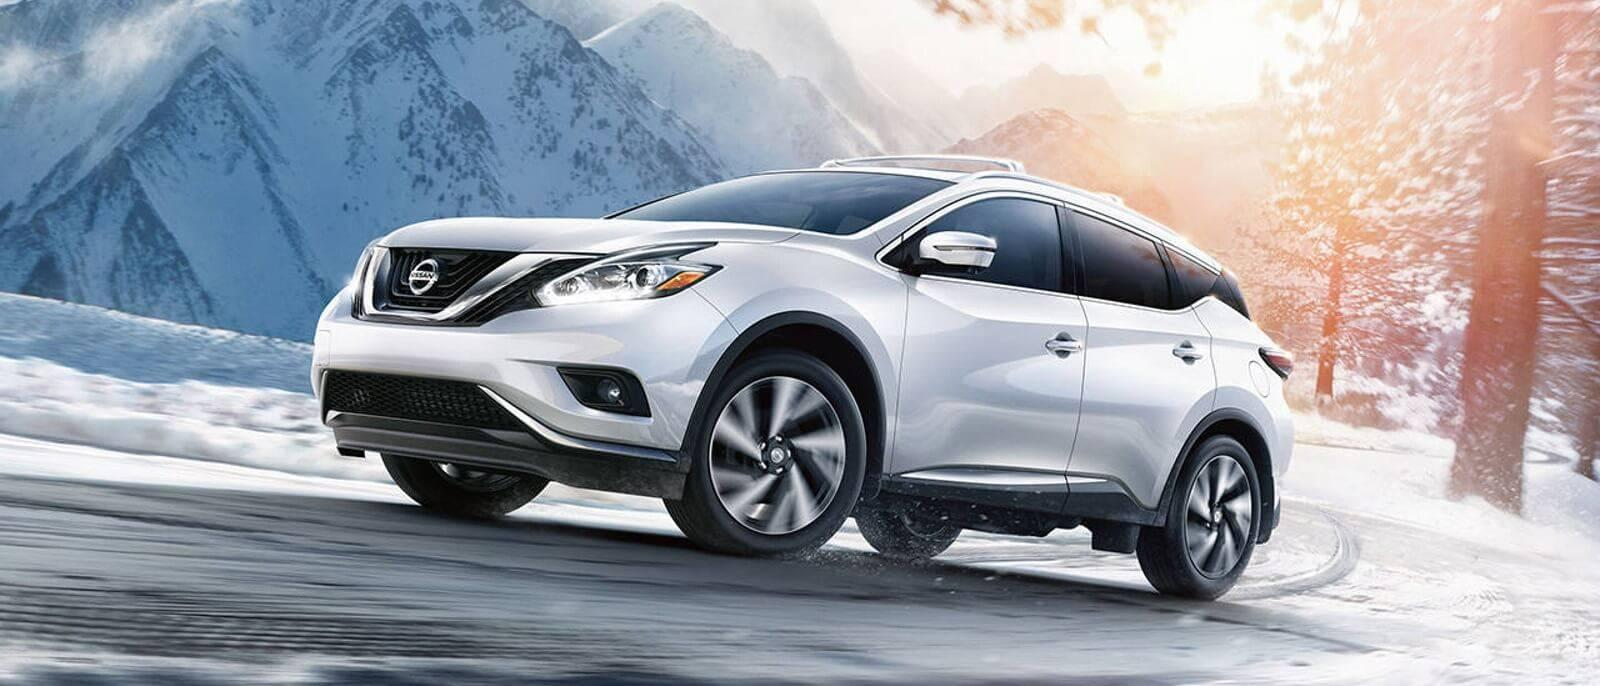 2017 Nissan Murano in the mountains